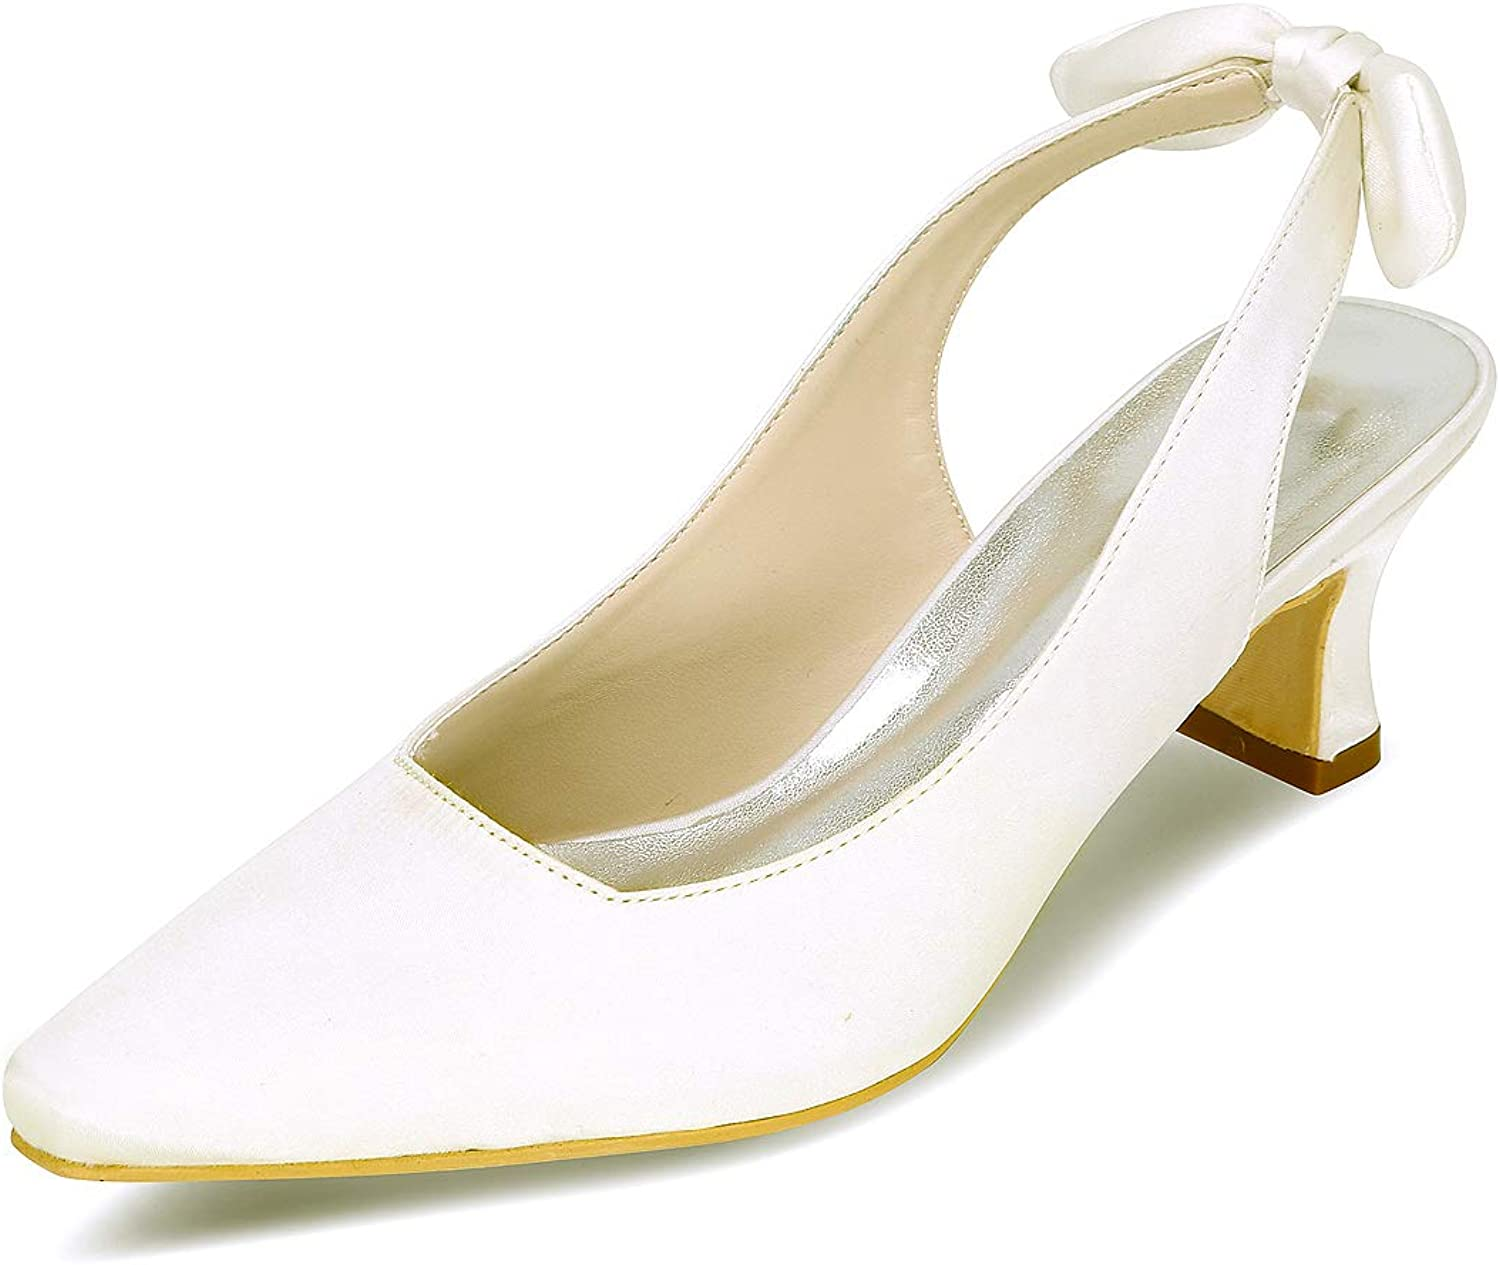 Fanciest Women's Pointed Pumps Heels Sandals Bow Wedding Bridal shoes White 0723-11F